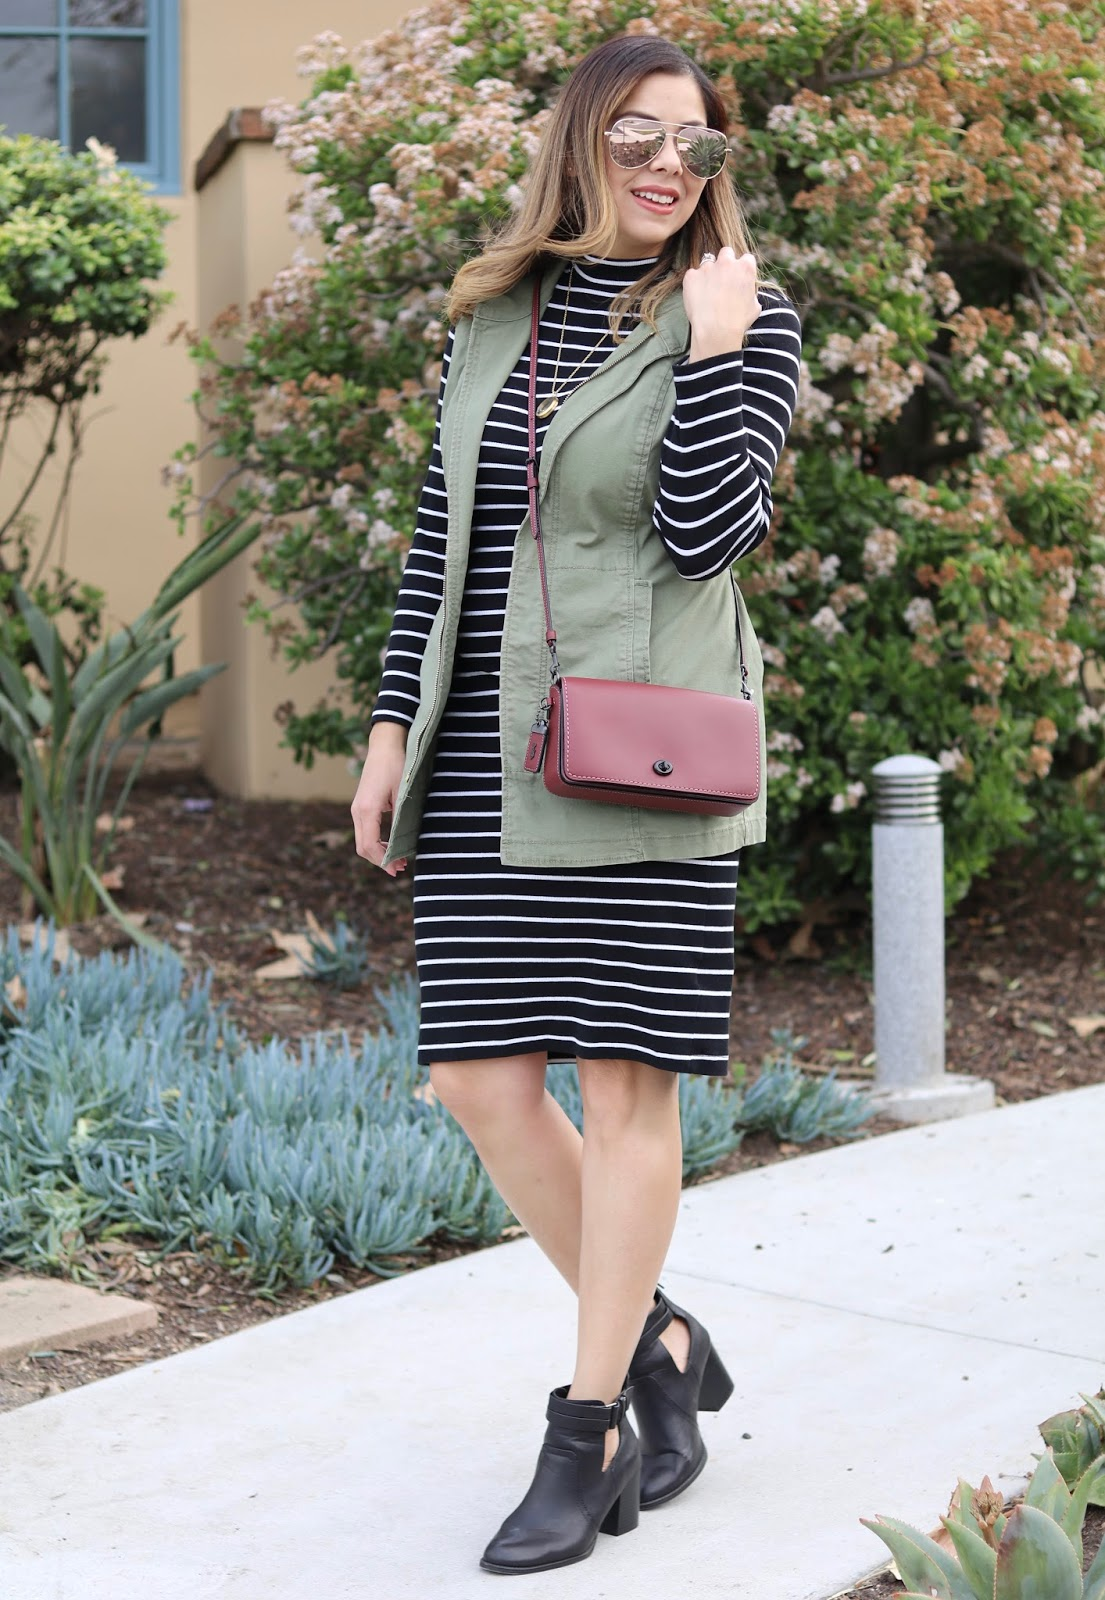 Casual outfit ideas, comfortable outfit idea, errands outfit